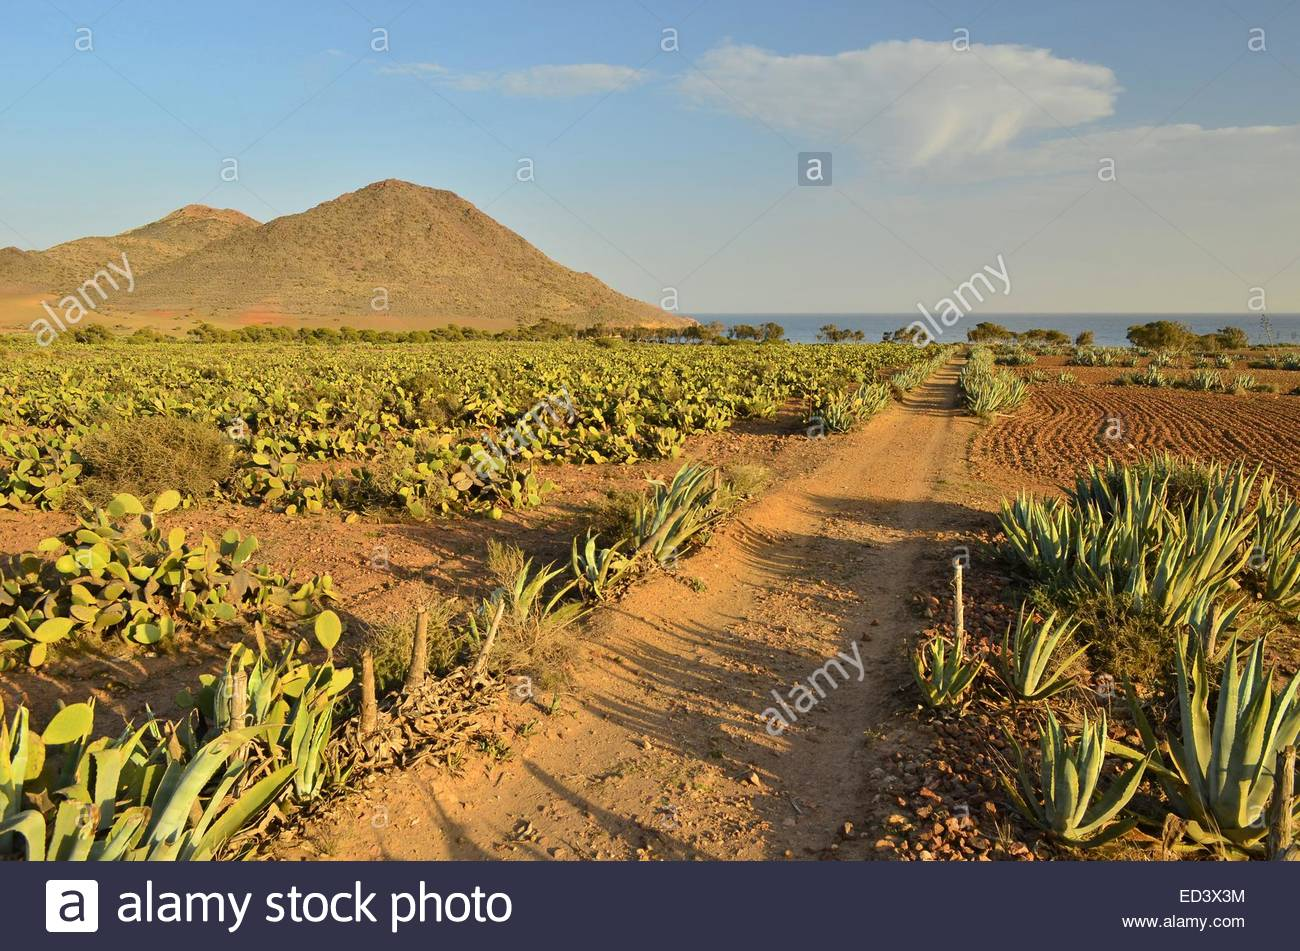 Dirt path through arid volcanic landscape with Agave and cactus plants, Cabo De Gata Nijar Natural Park Almeria - Stock Image